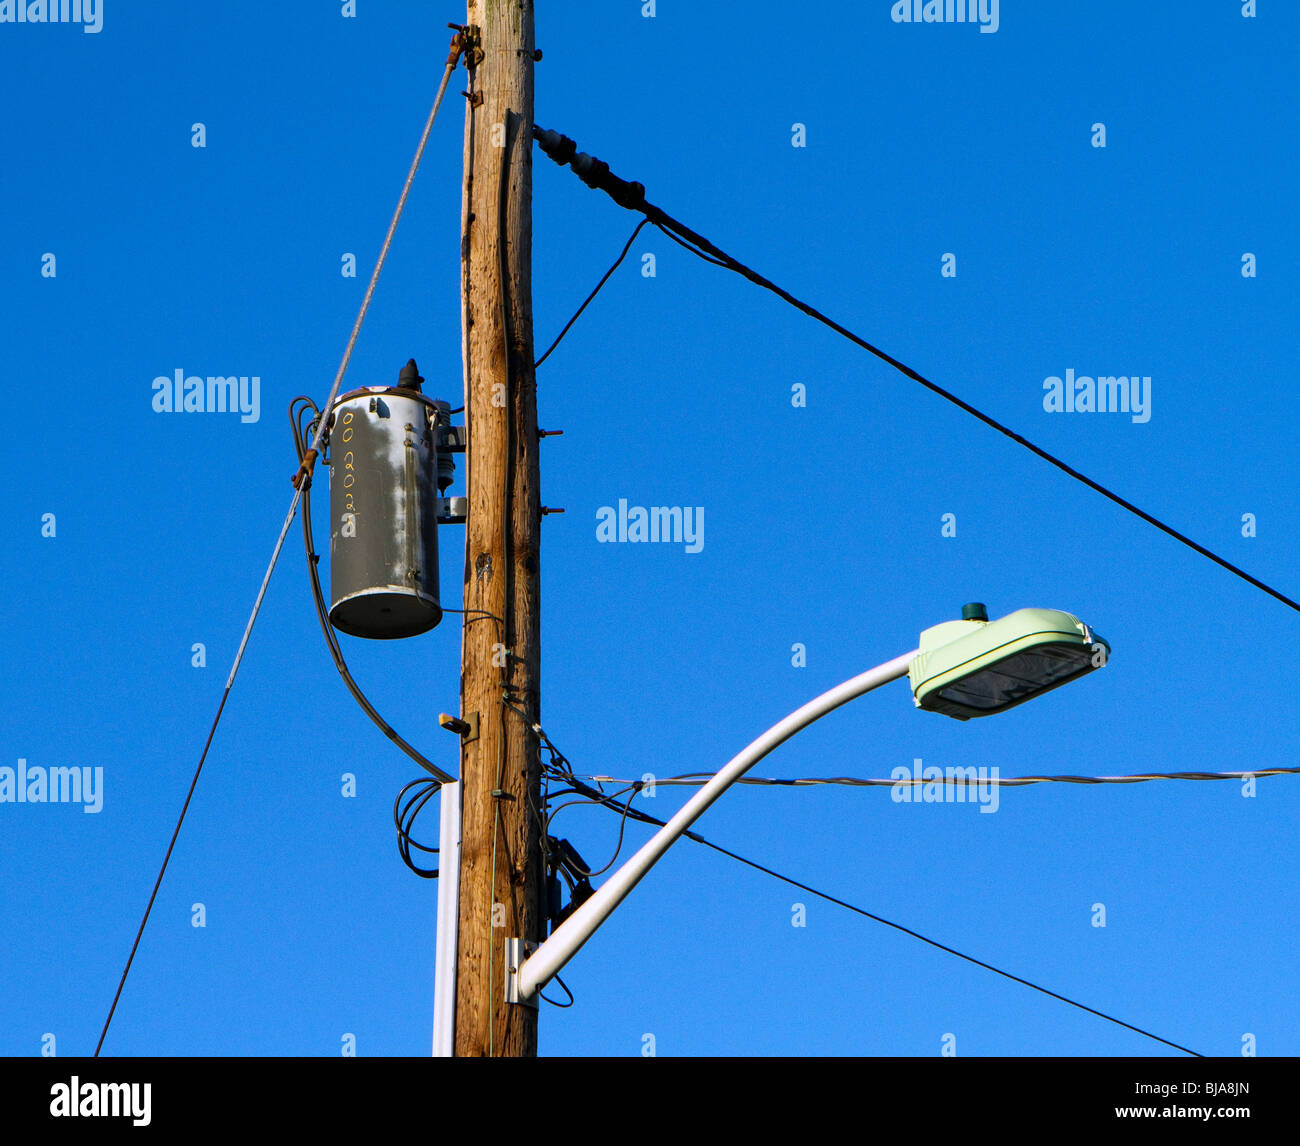 Stock Photo - Utility pole with street l& wires and transformer : pole transformer wiring - yogabreezes.com